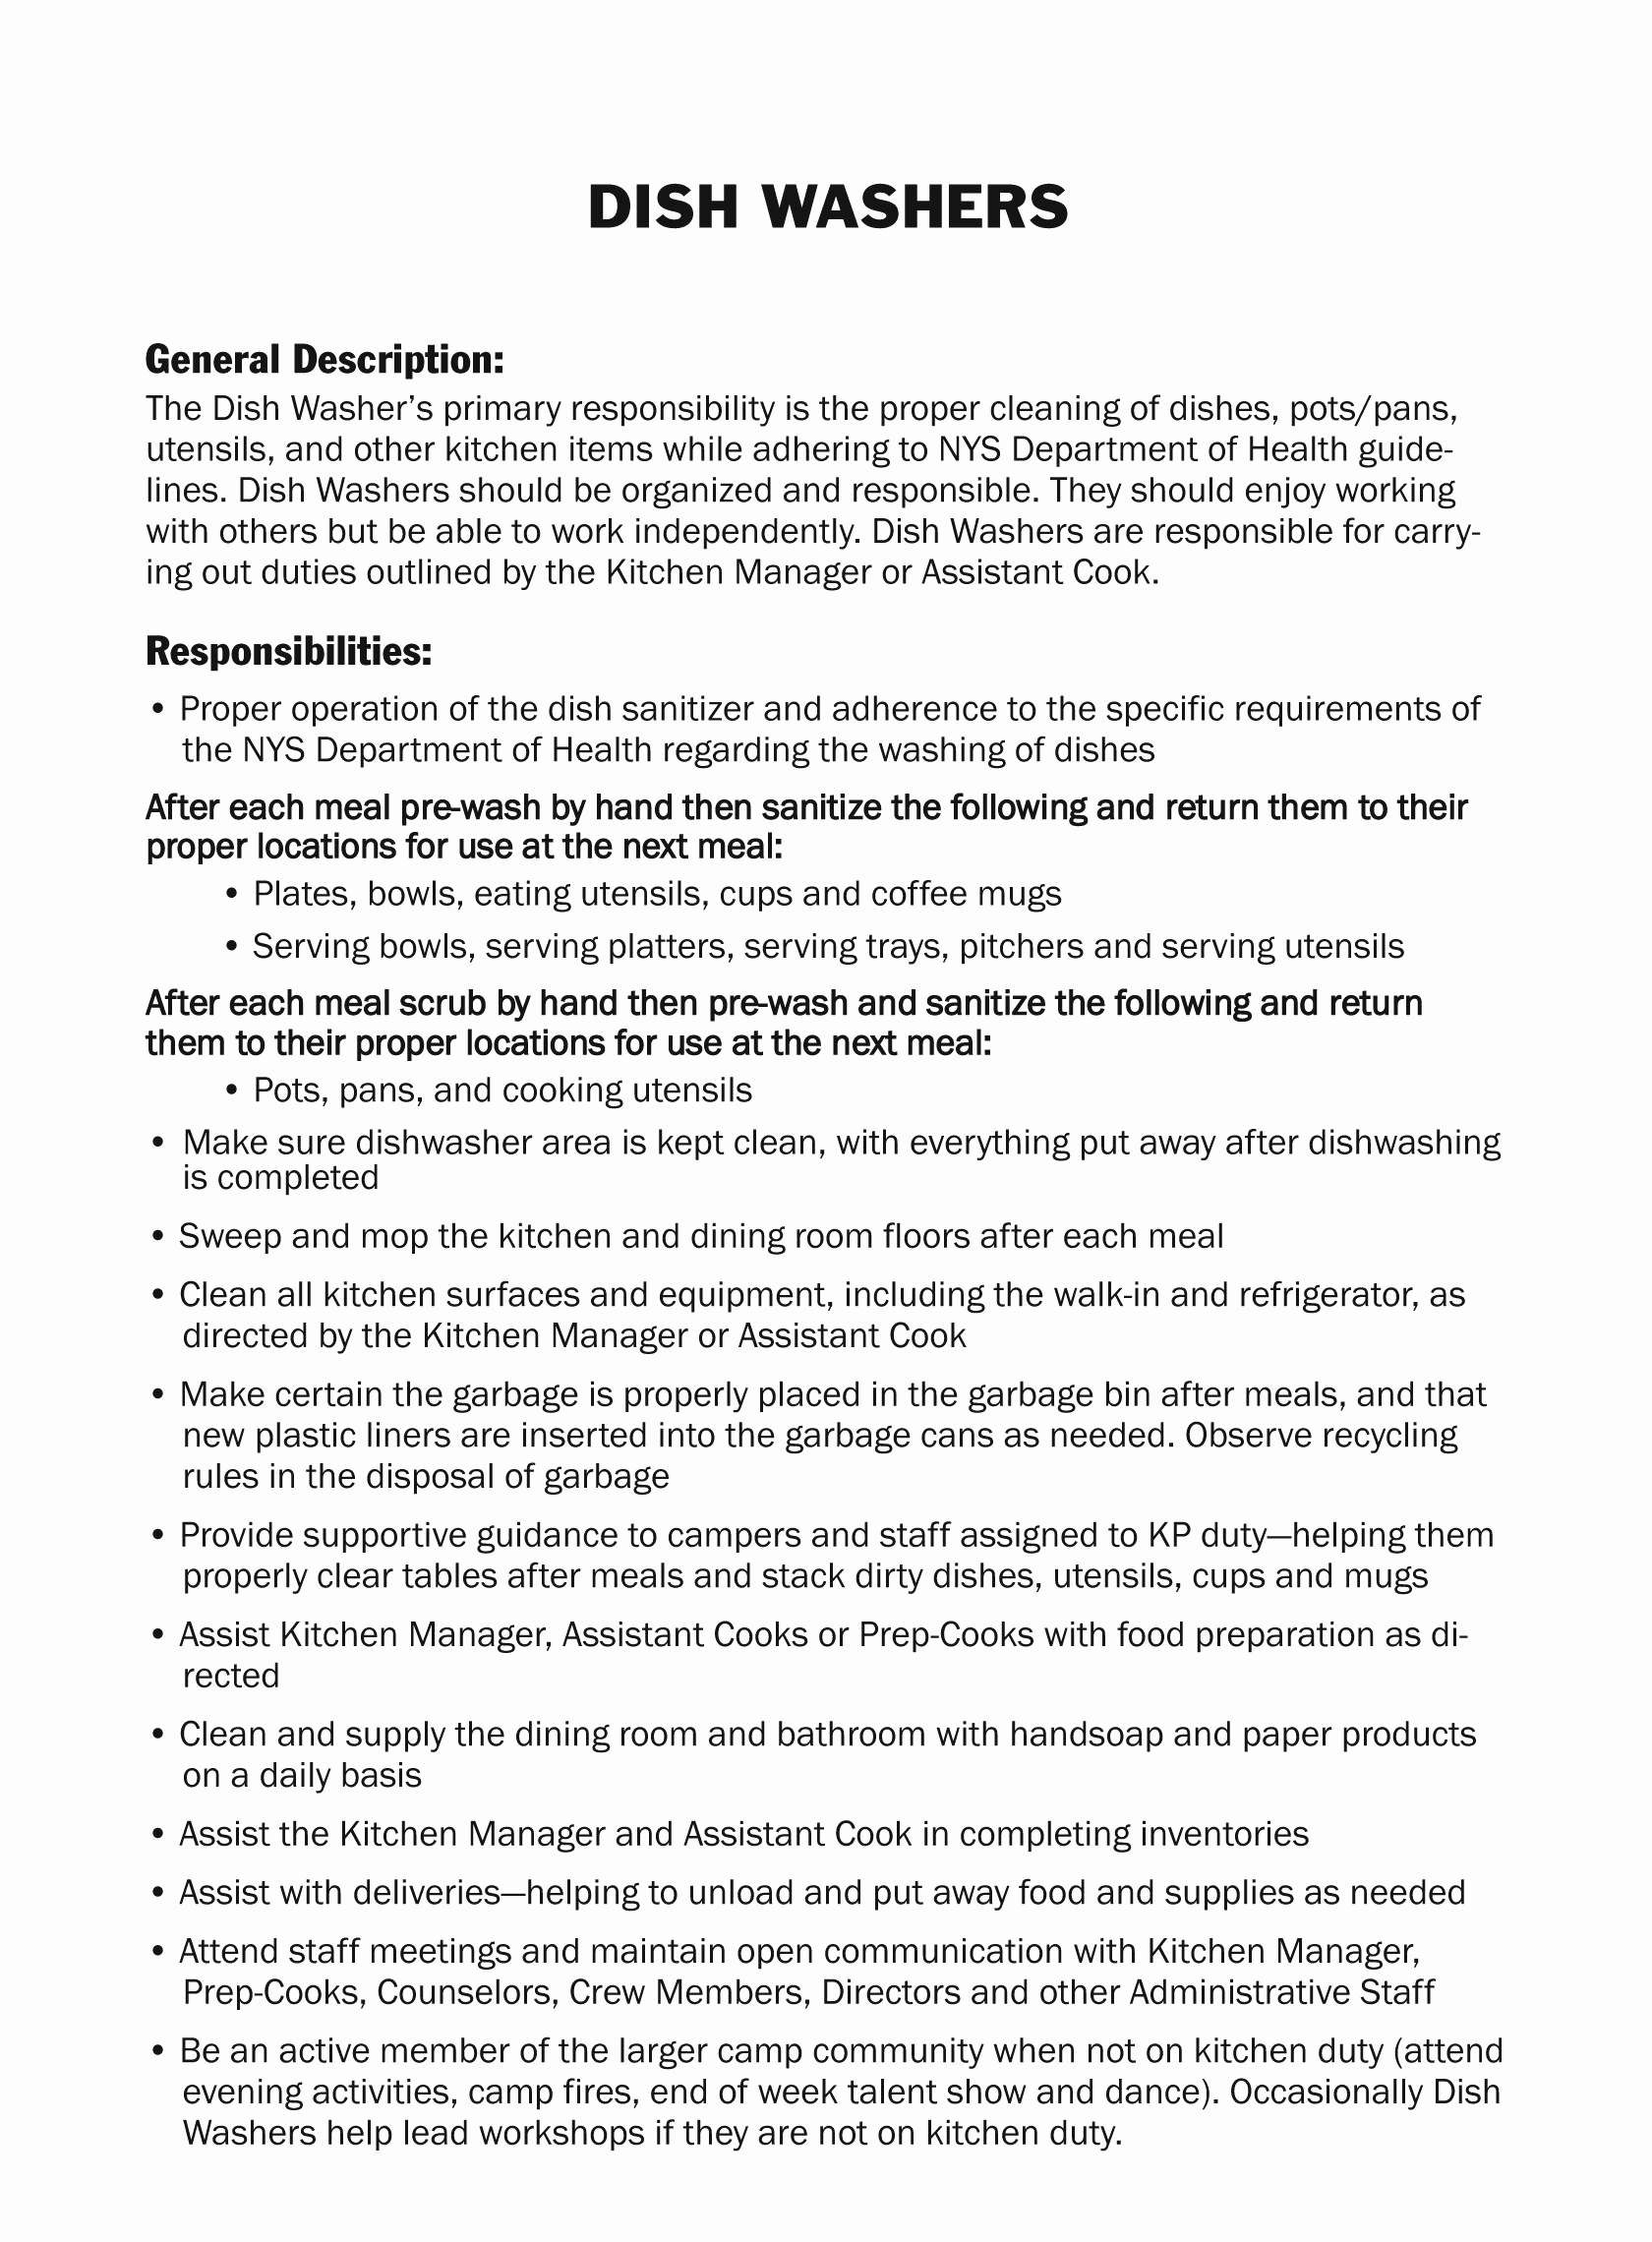 Dishwasher Job Description Sample - Job Description An Optician Fresh Dishwasher Job Description for